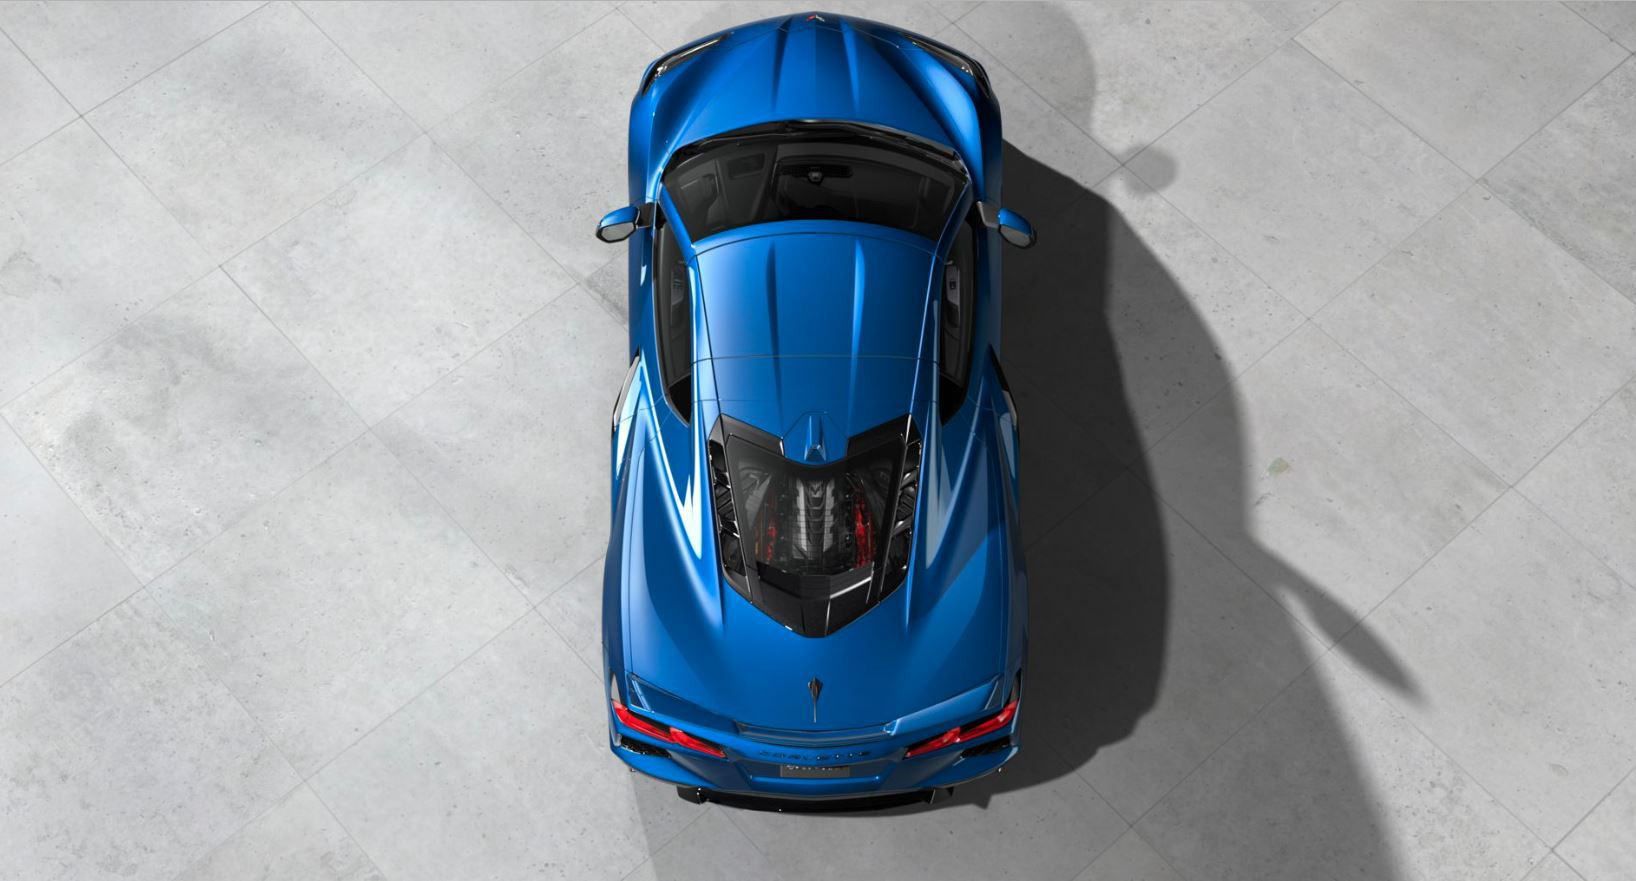 Overhead view of the 2020 Chevrolet Corvette C8 Stingray showing the midengine placement.